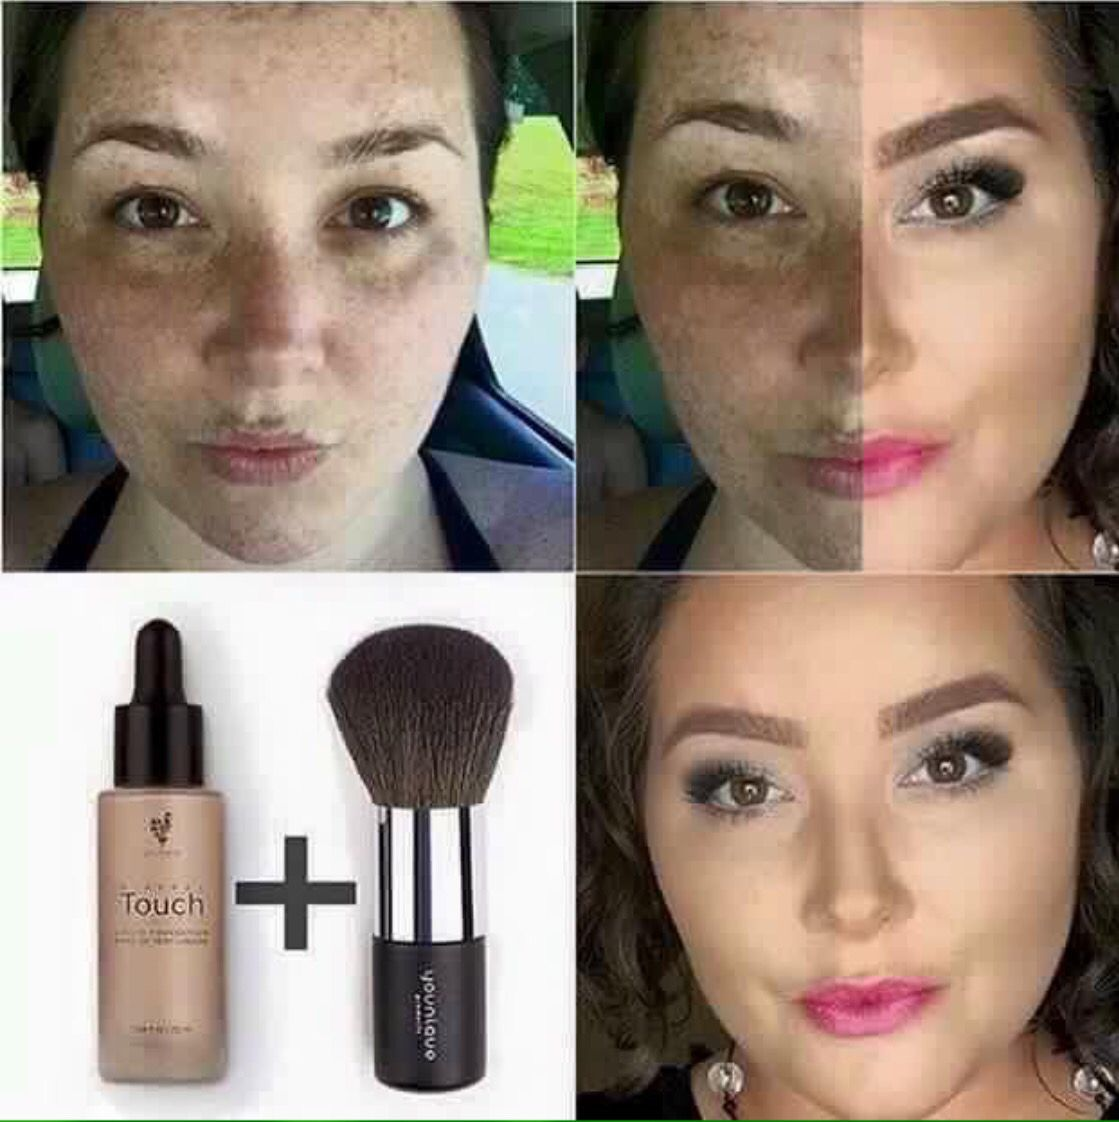 Does your foundation give you this kind of coverage?? Do